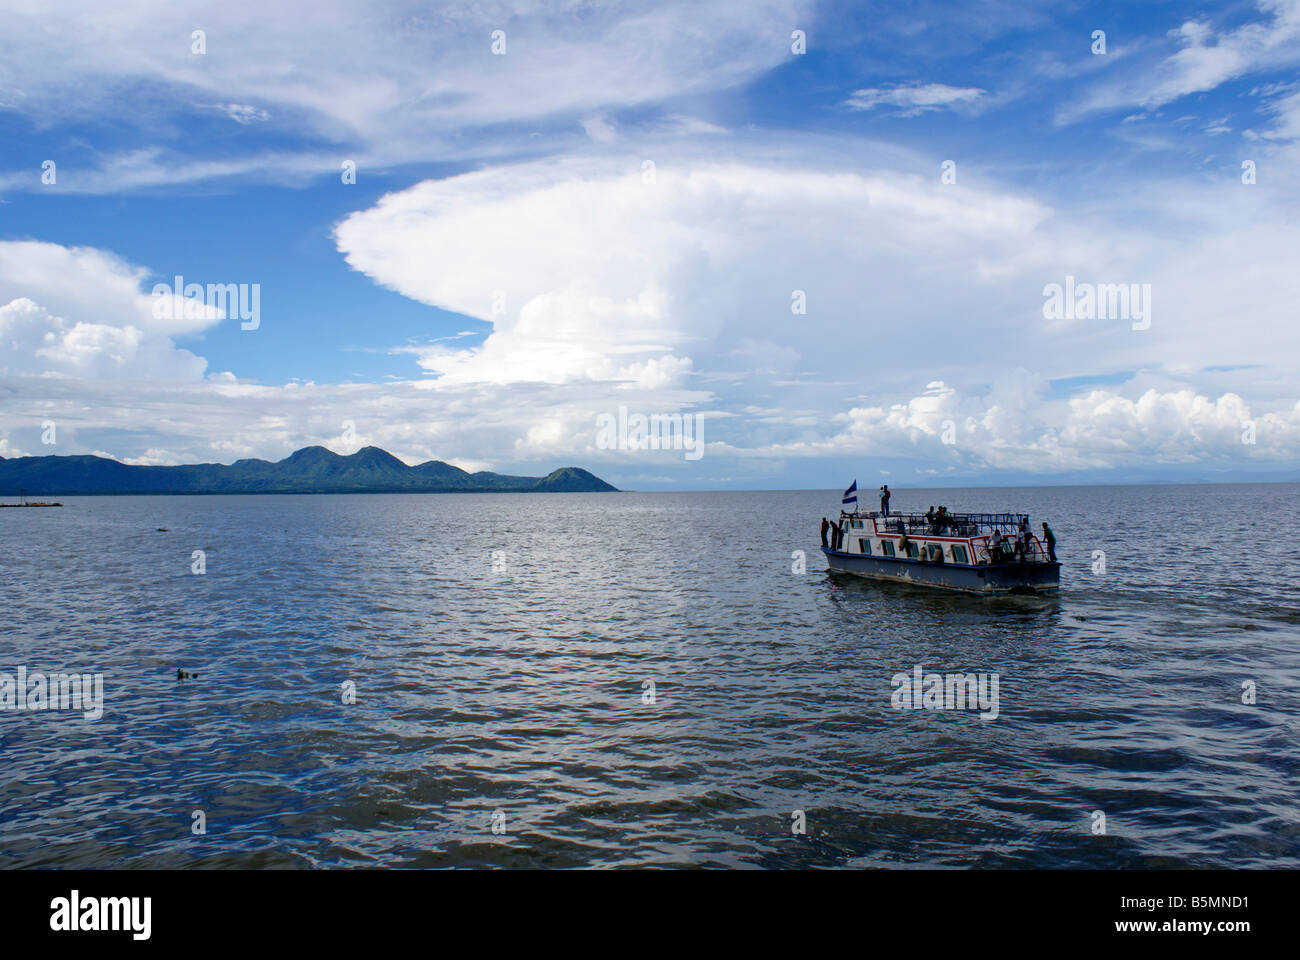 passenger-ferry-on-lake-managua-or-lago-